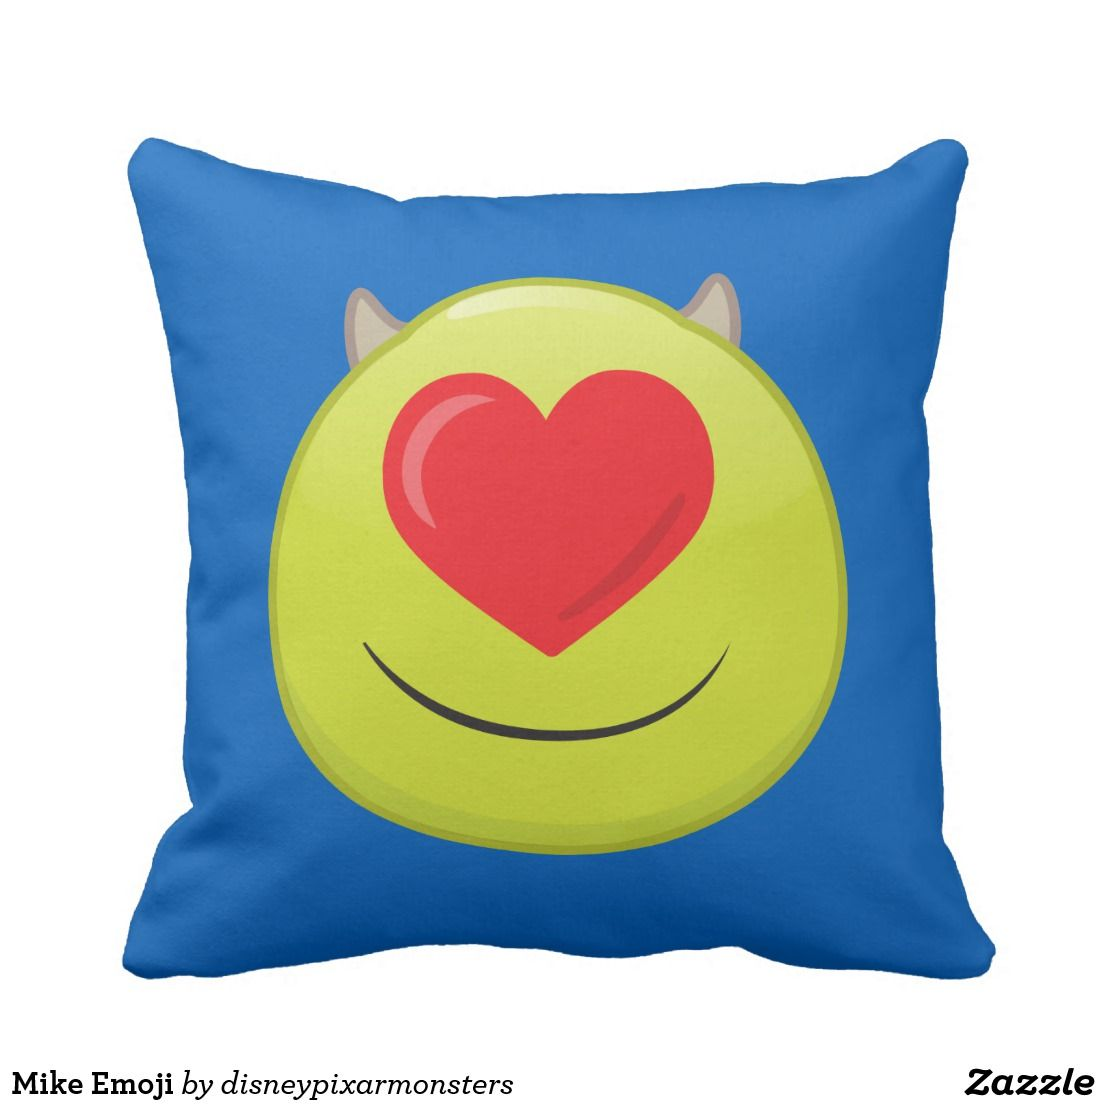 Mike emoji throw pillow emoji pillows pinterest emoji